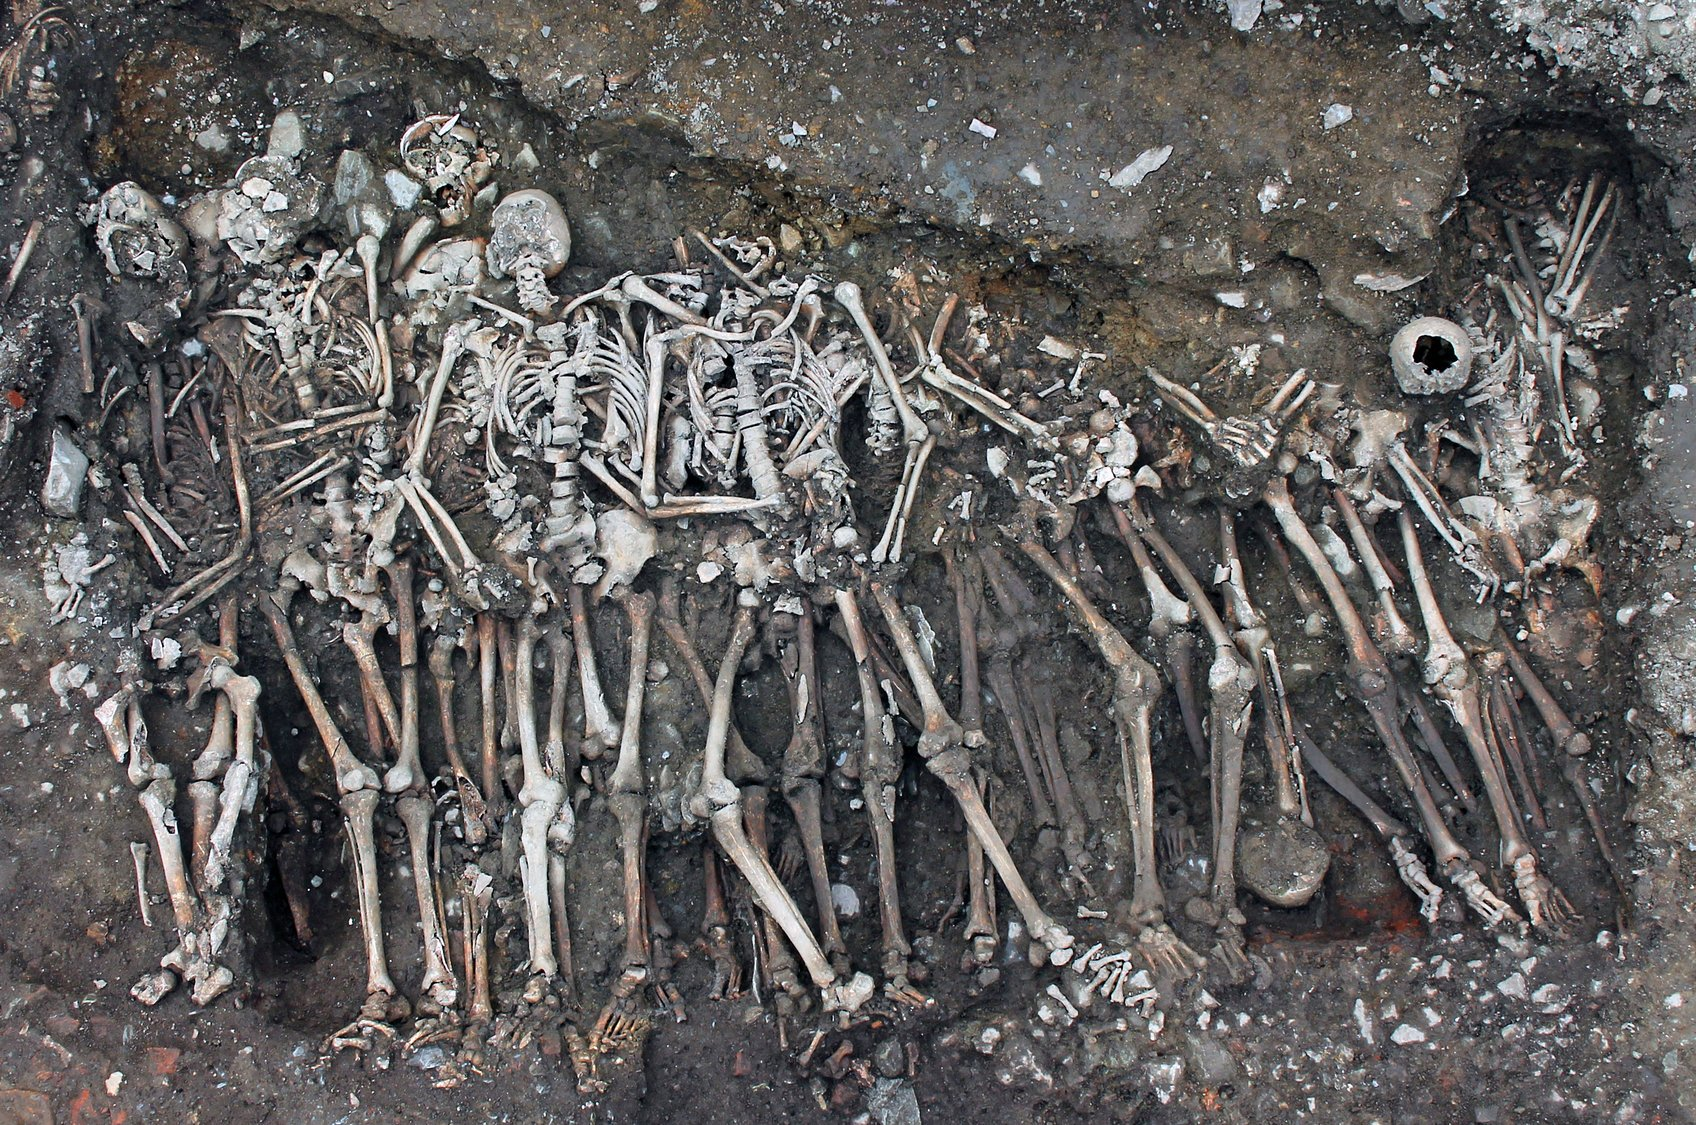 Mass graves of soldiers from 1491 French siege discovered - Medievalists.net